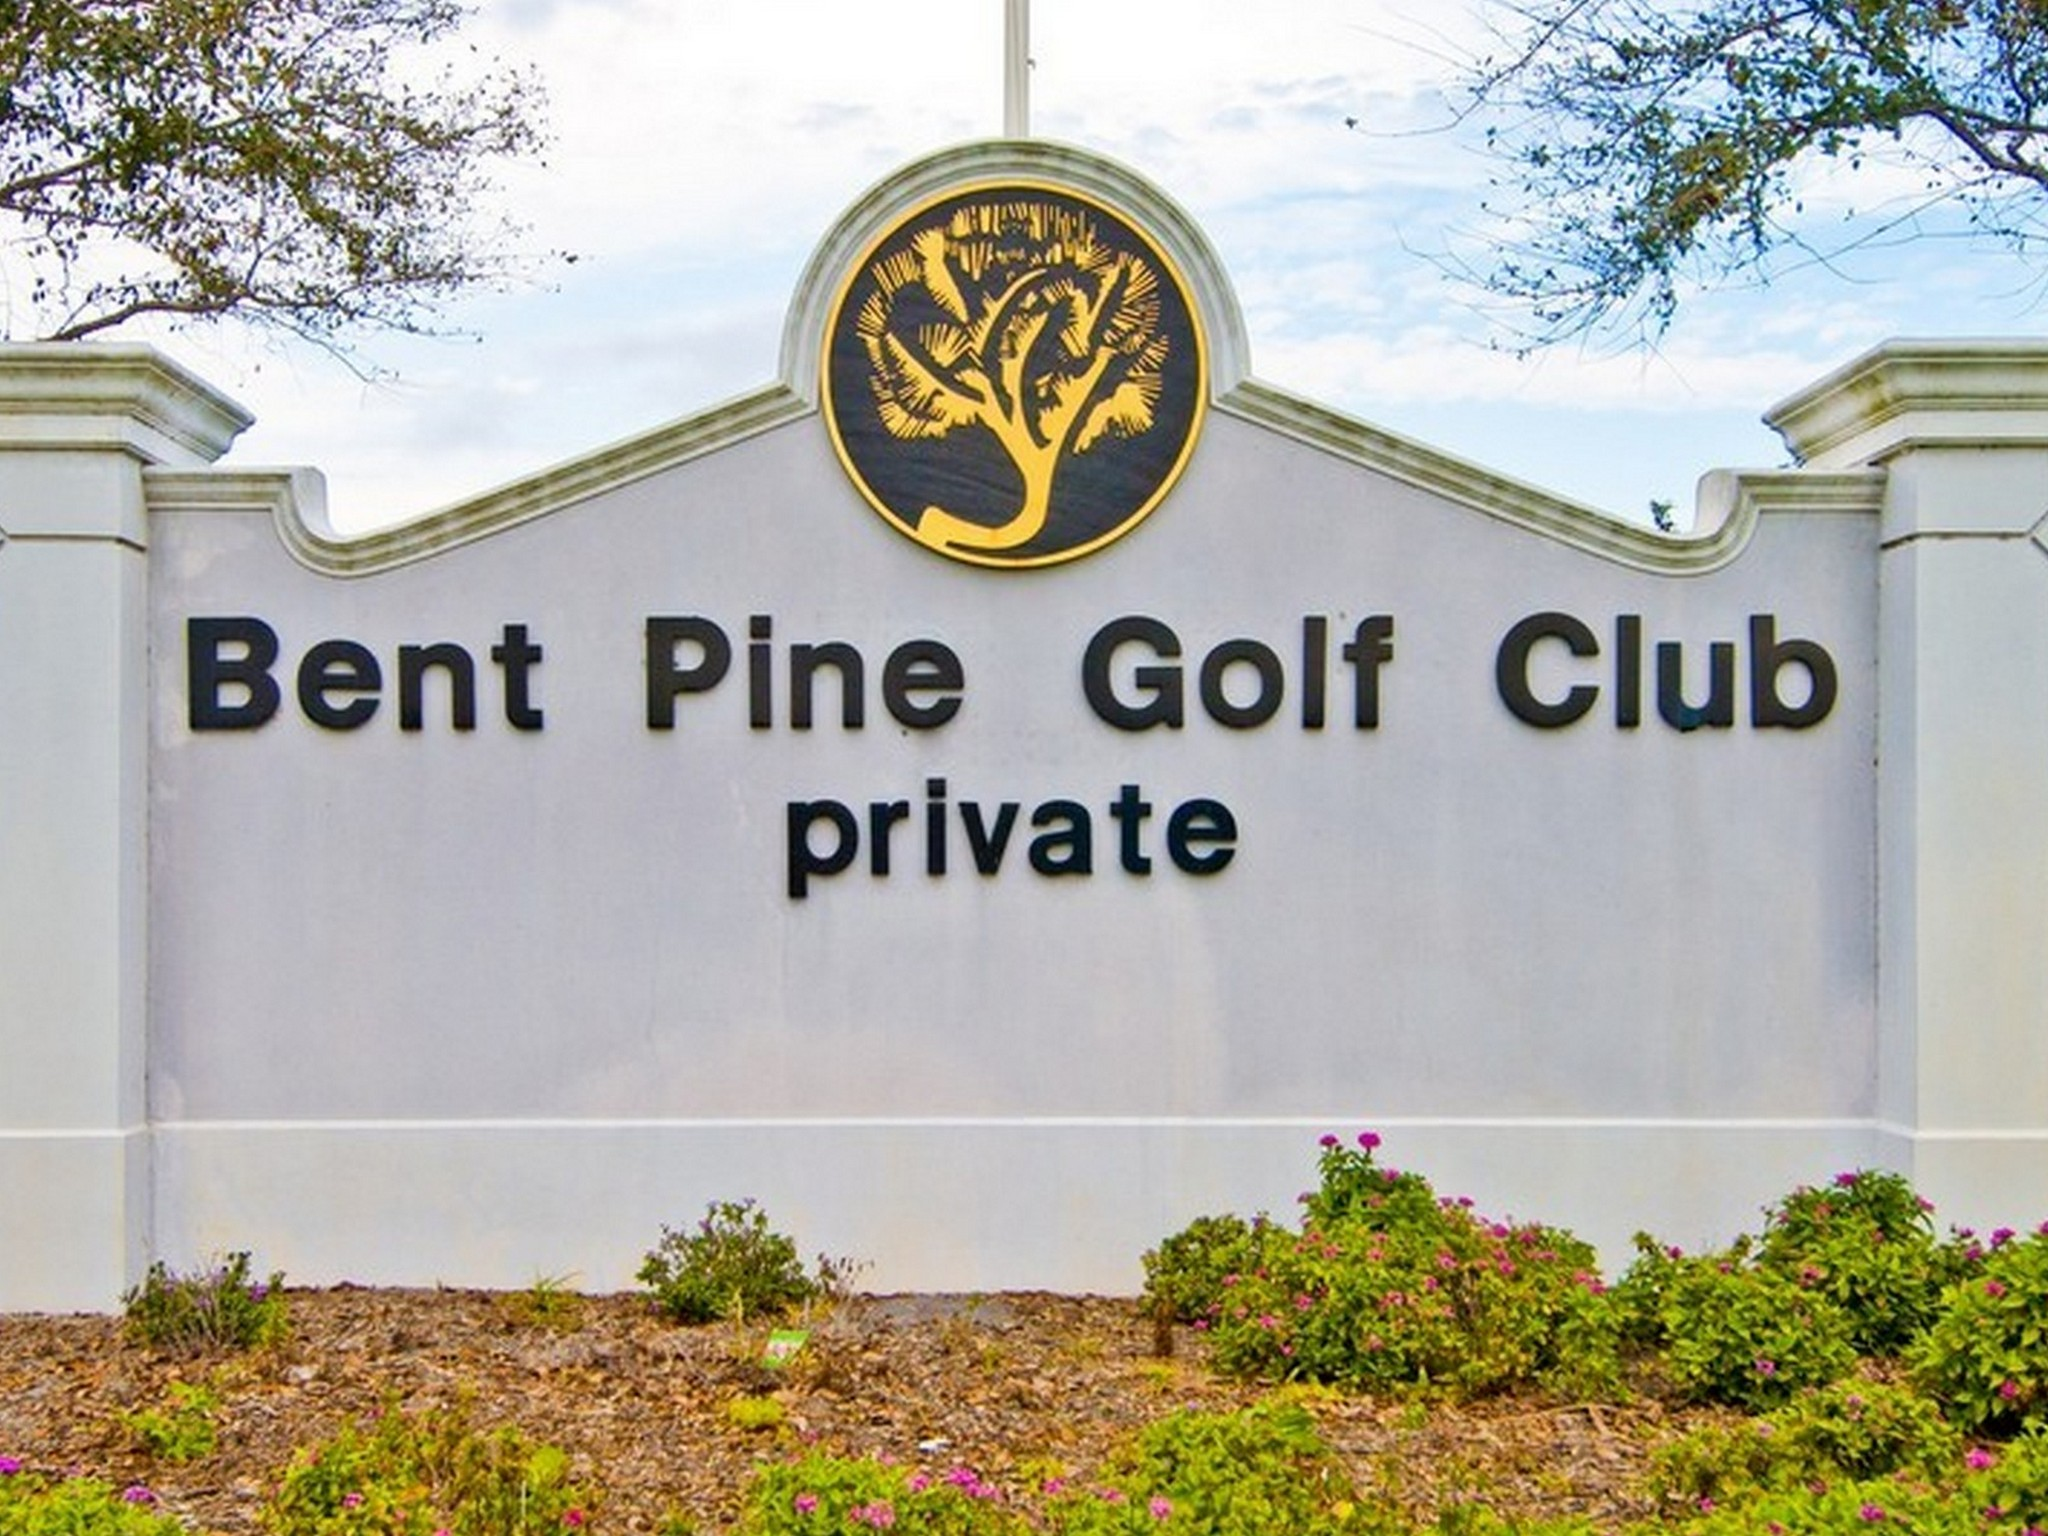 Land for Sale at To Be Constructed Savvy Home in Golf Course Community 5750 Glen Eagle Lane Vero Beach, Florida, 32967 United States